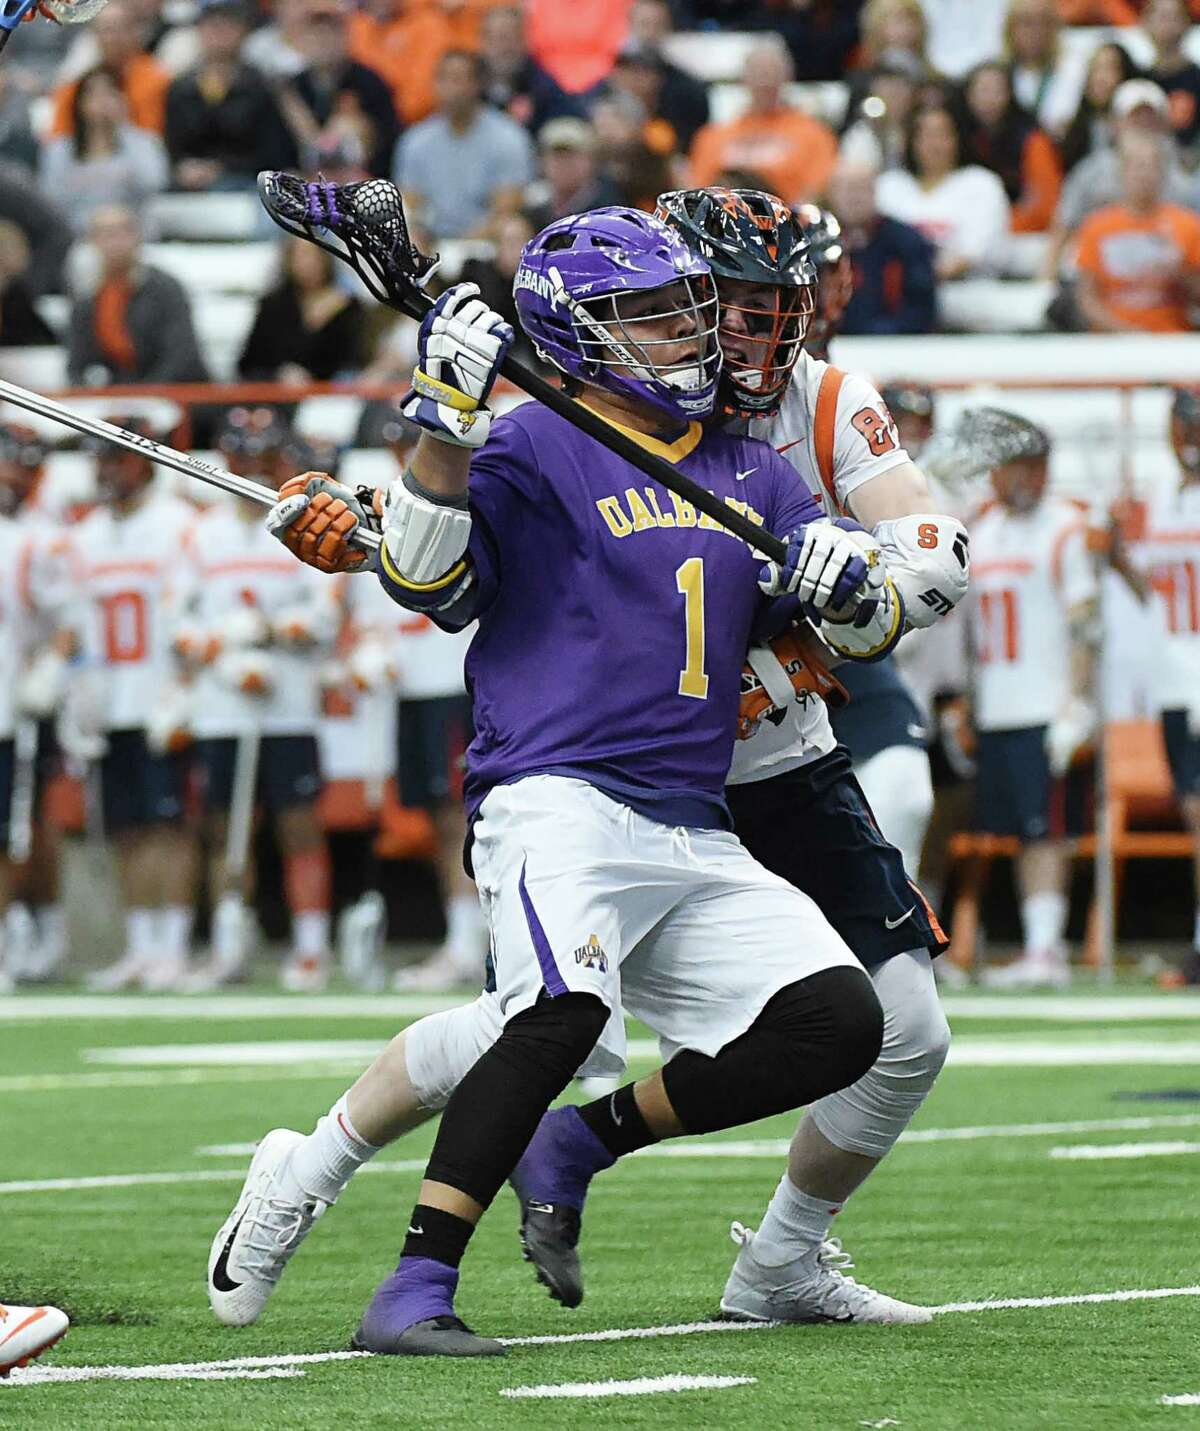 UAlbany freshman Tehoka Nanticoke fights for position against Syracuse during their game Saturday, Feb. 17, 2018, at the Carrier Dome in Syracuse. (Greg Wall / UAlbany Athletics)